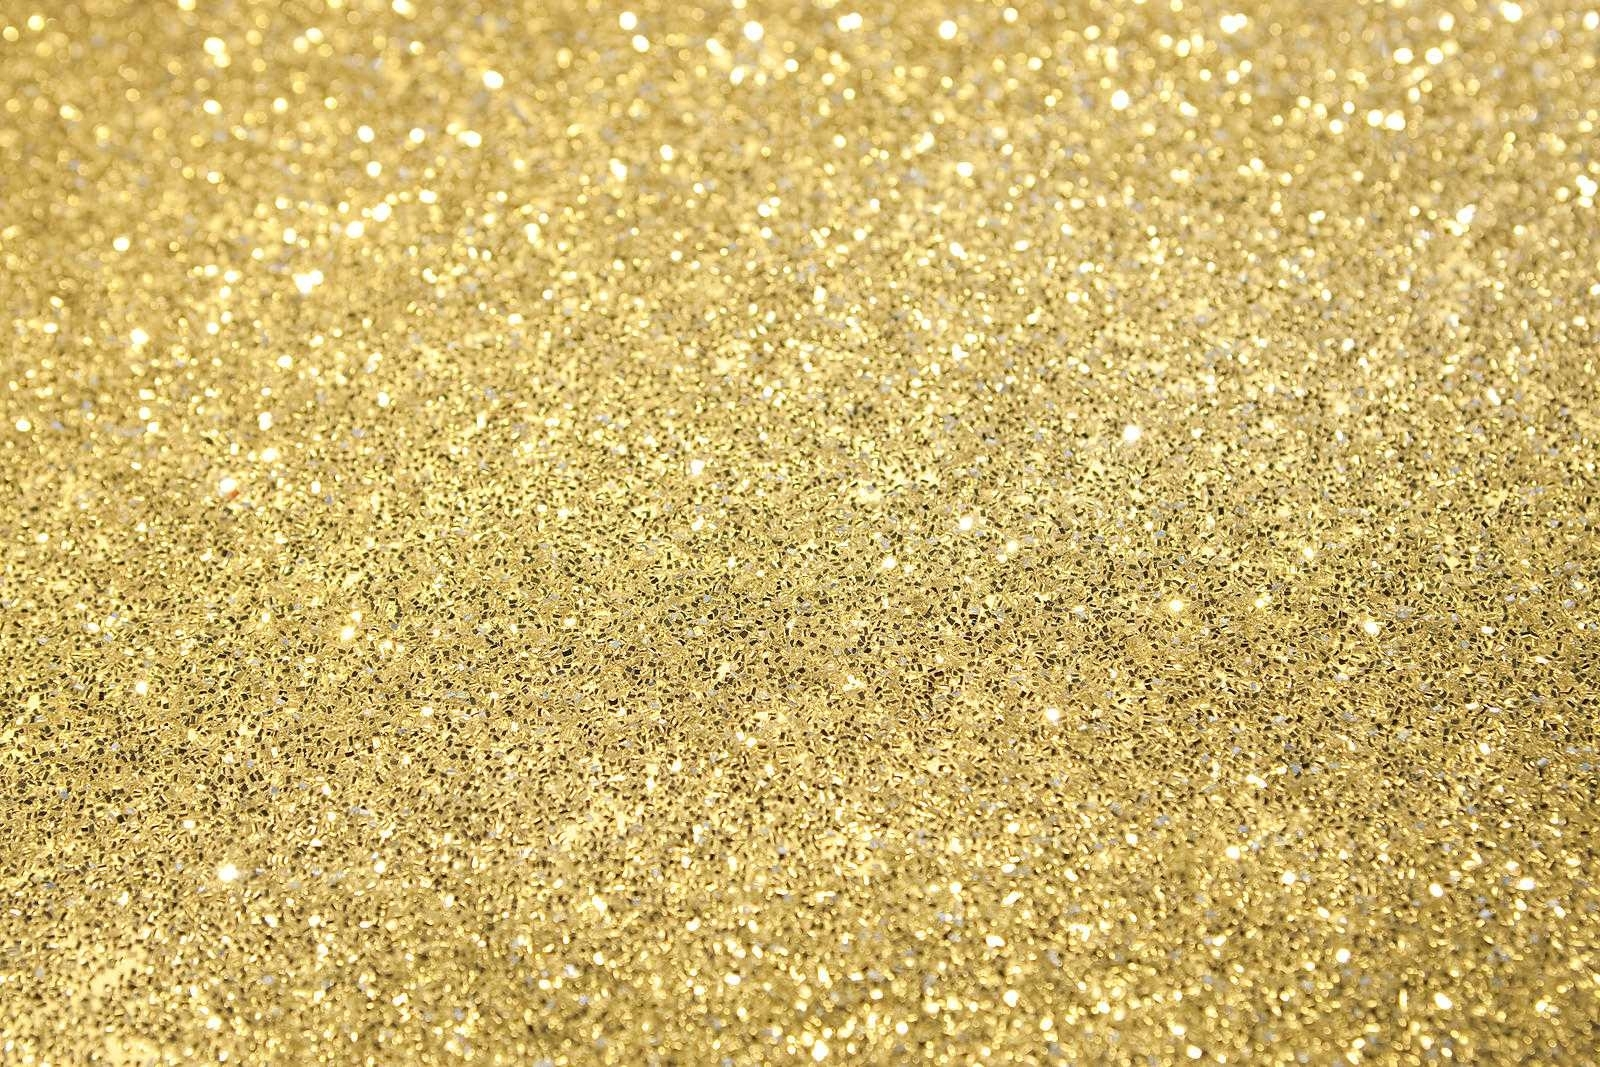 widescreen of glitter tumblr backgrounds gold sparkle background